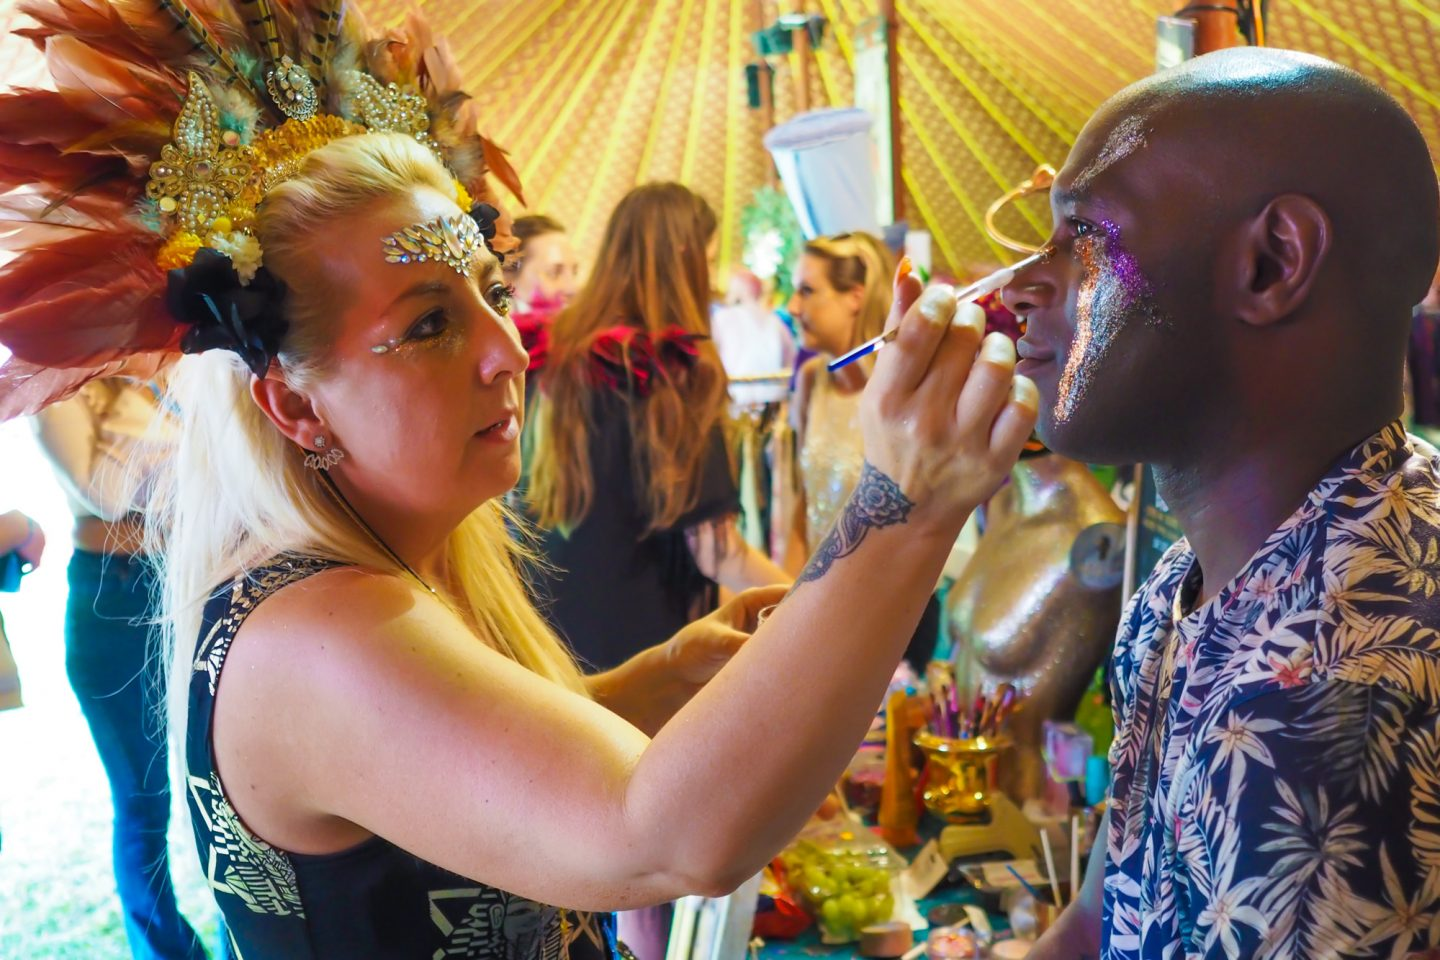 Zoe Zedhead headdress, Gypsy Shrine gems, Fashpack face-painting, Love Saves the Day Bristol